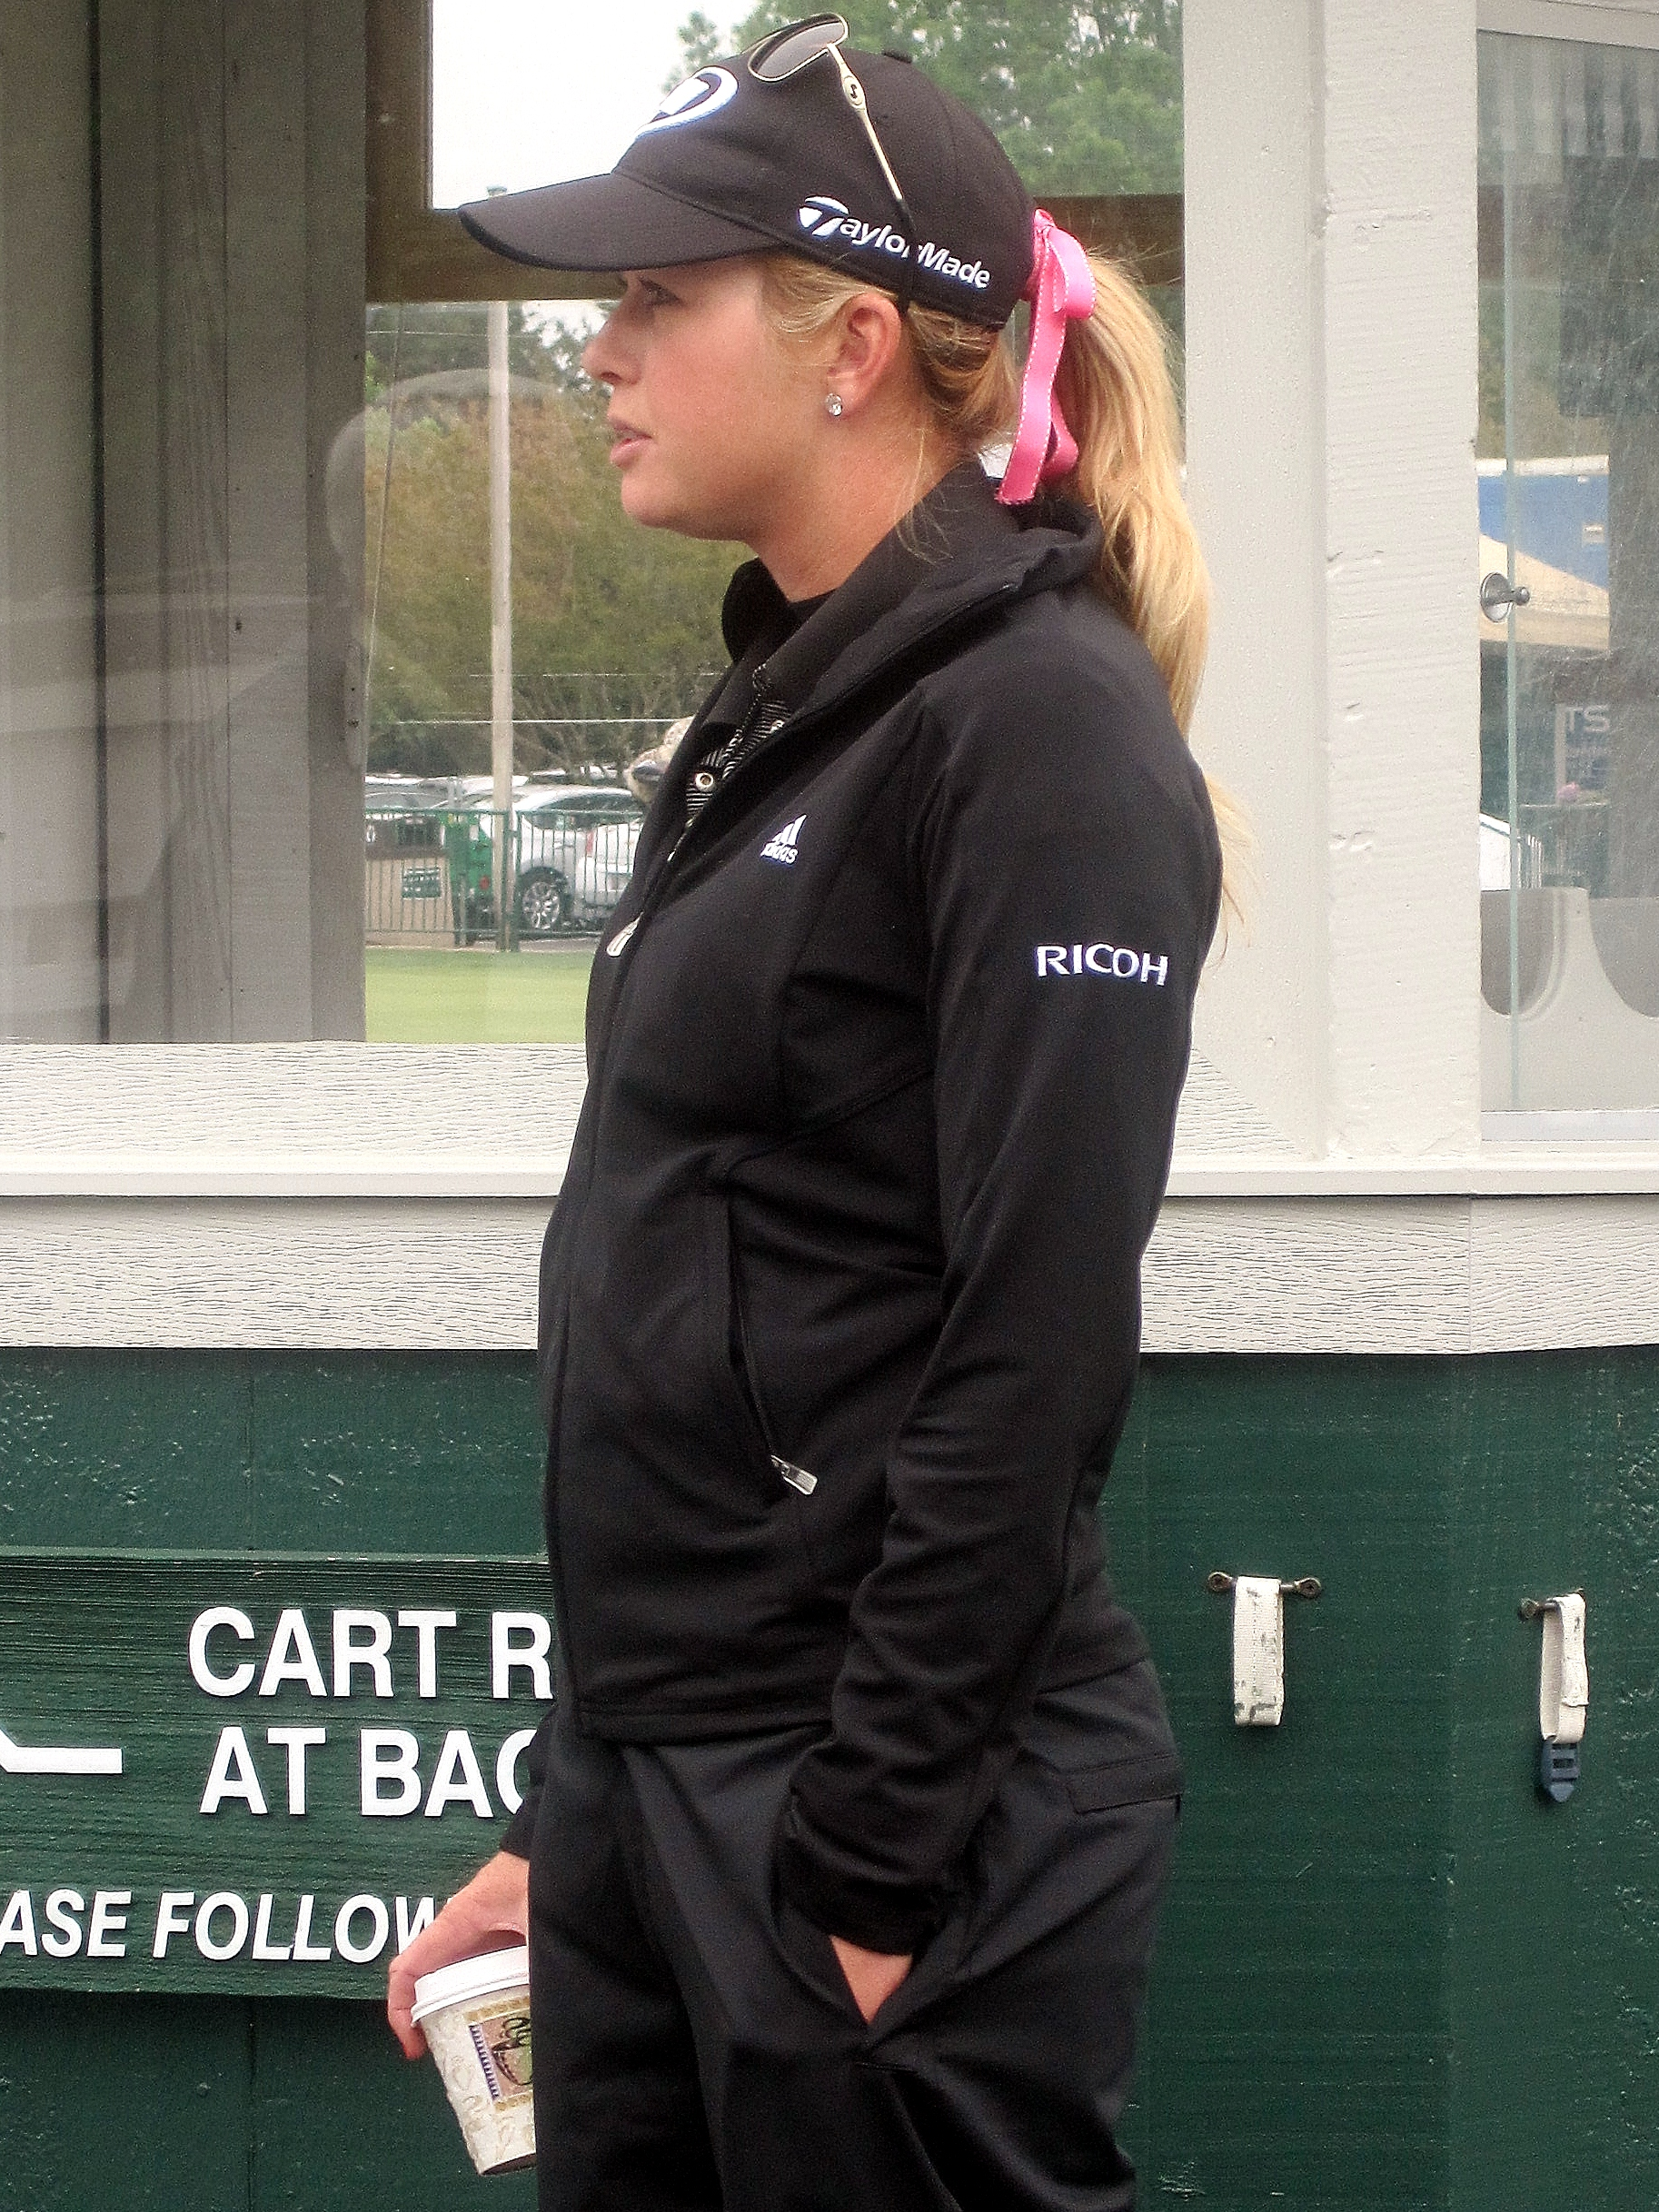 Paula Creamer arrives at the Kingsmill's practice green, much to the delight of the fans.